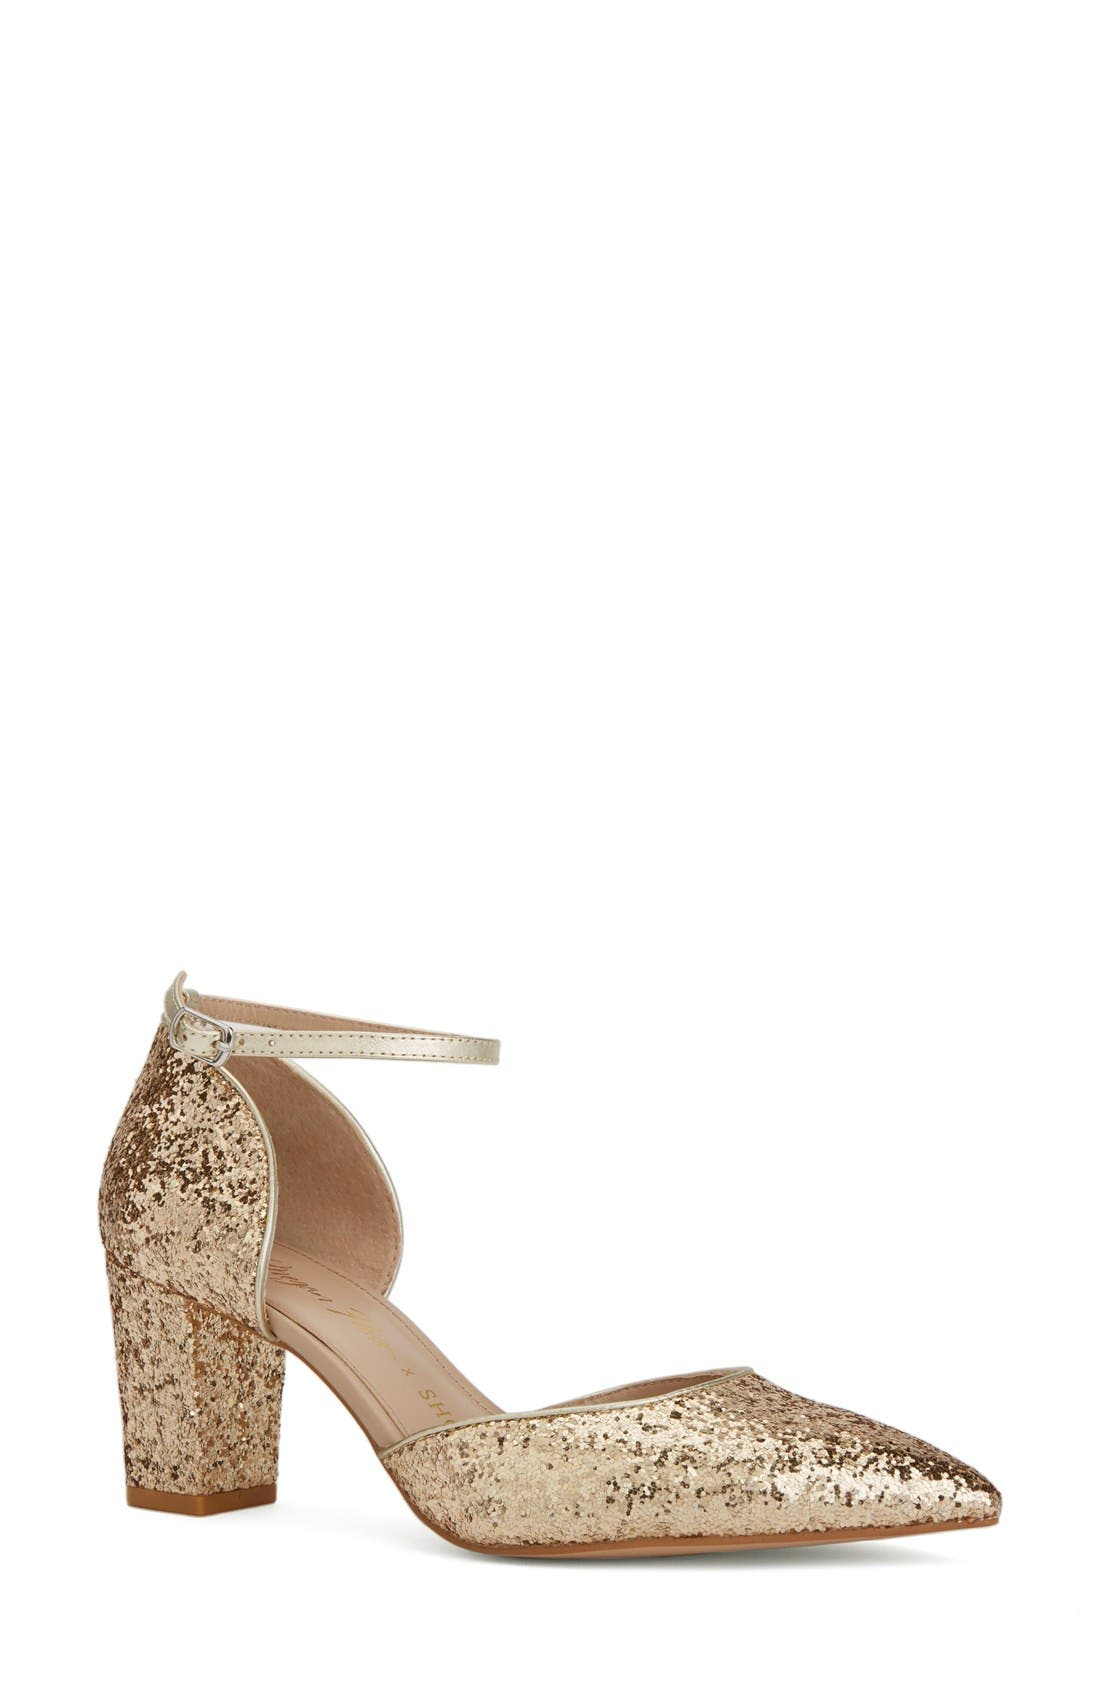 x Megan Hess Fleur-de-lis Collection Pump,                             Main thumbnail 1, color,                             Gold Sparkle